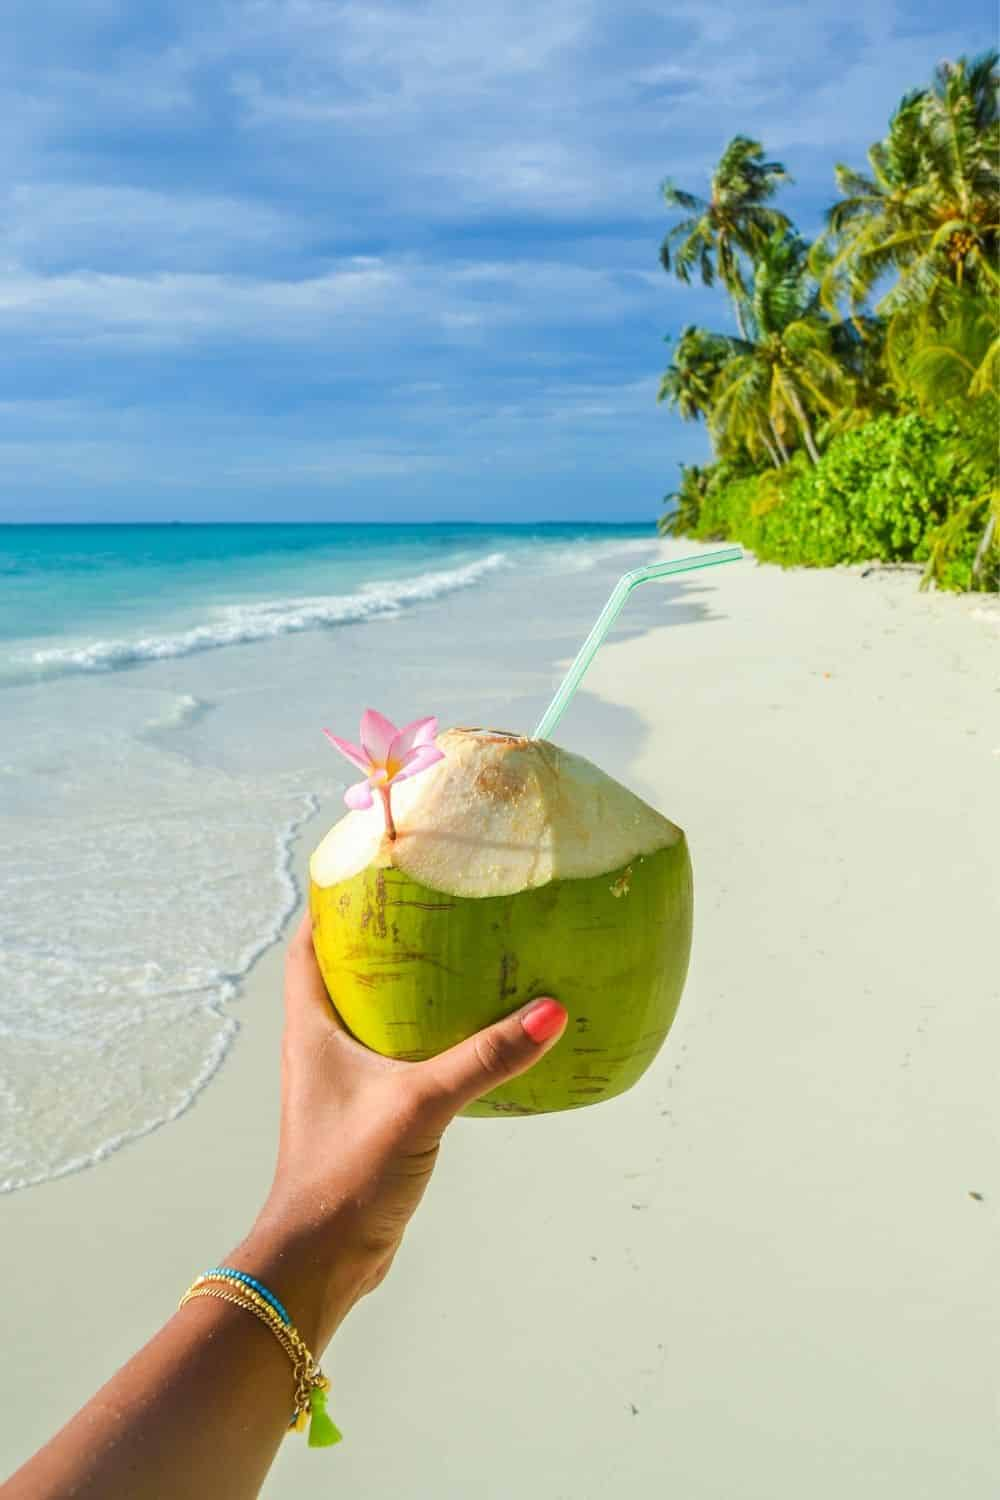 Photo of a person holding a green coconut with a straw with a Hawaiian beach in the background.